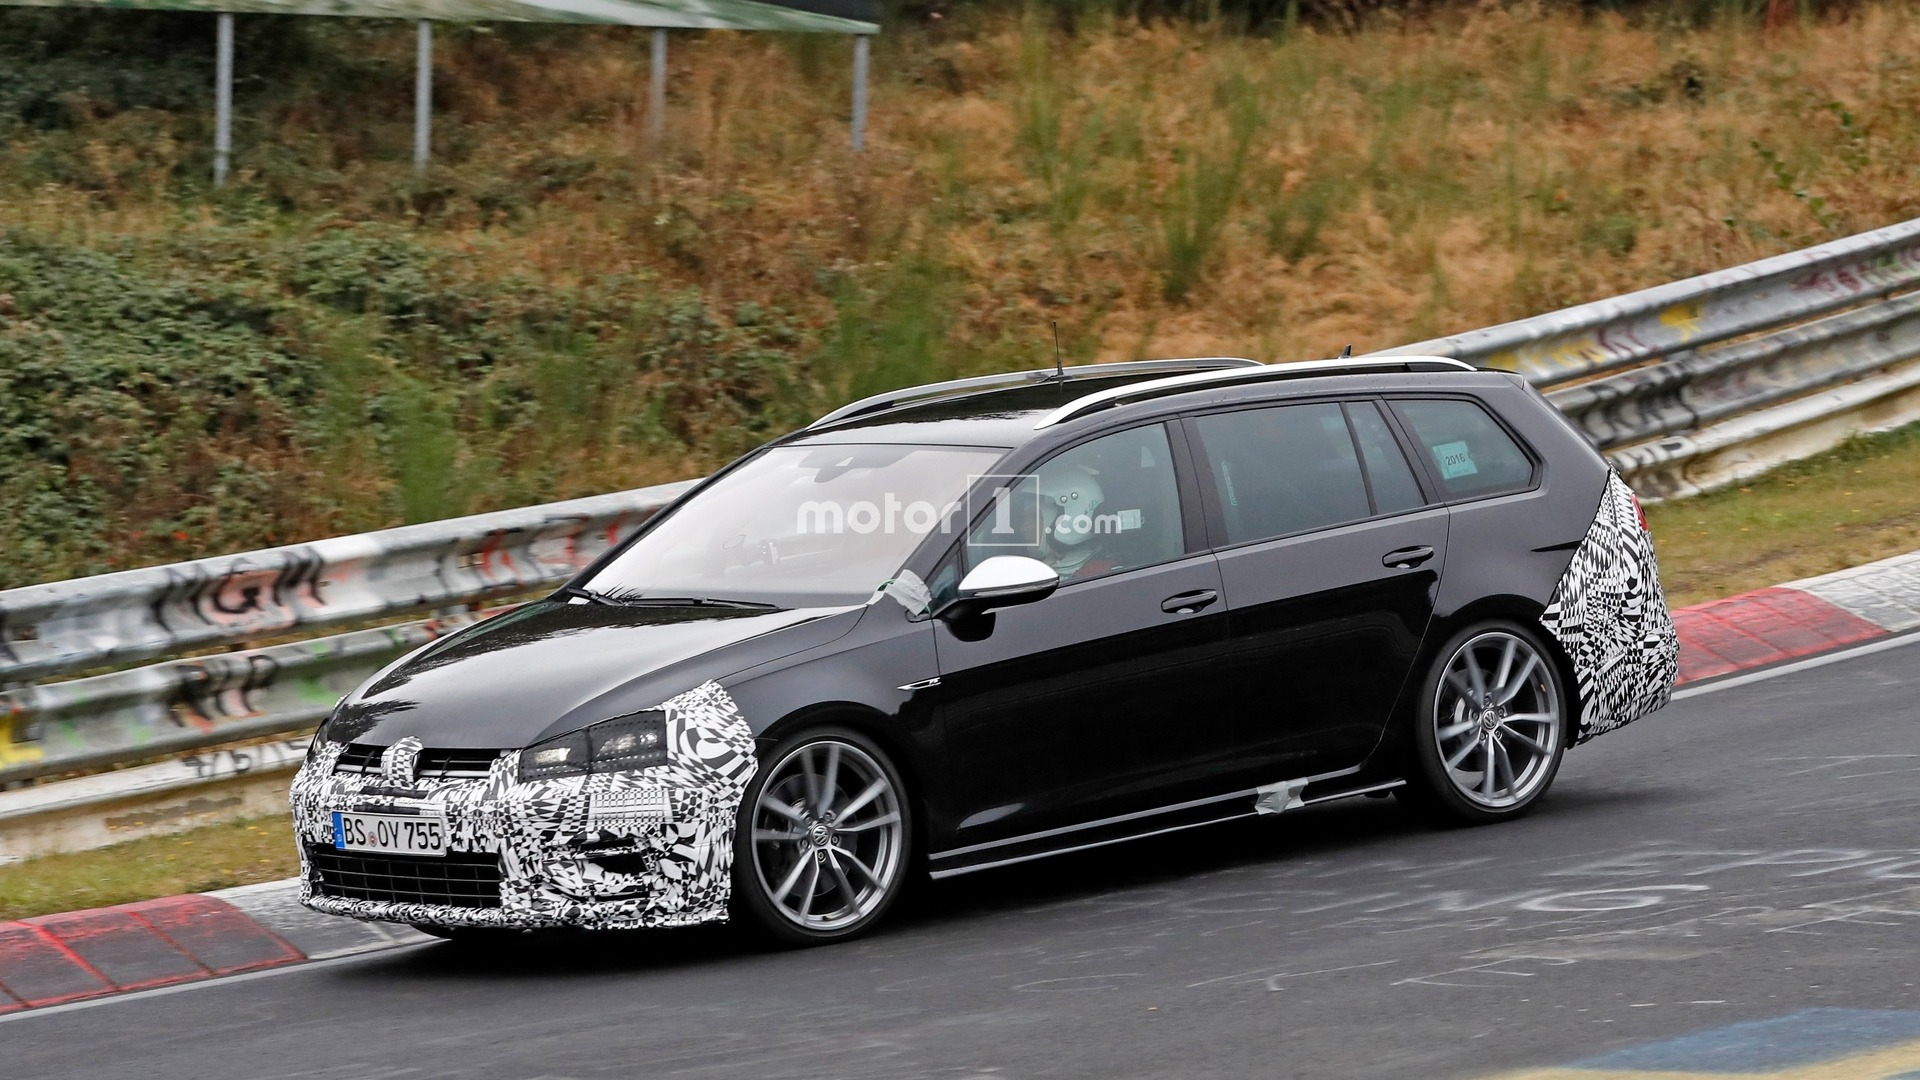 2017 vw golf facelift confirmed for november world premiere. Black Bedroom Furniture Sets. Home Design Ideas